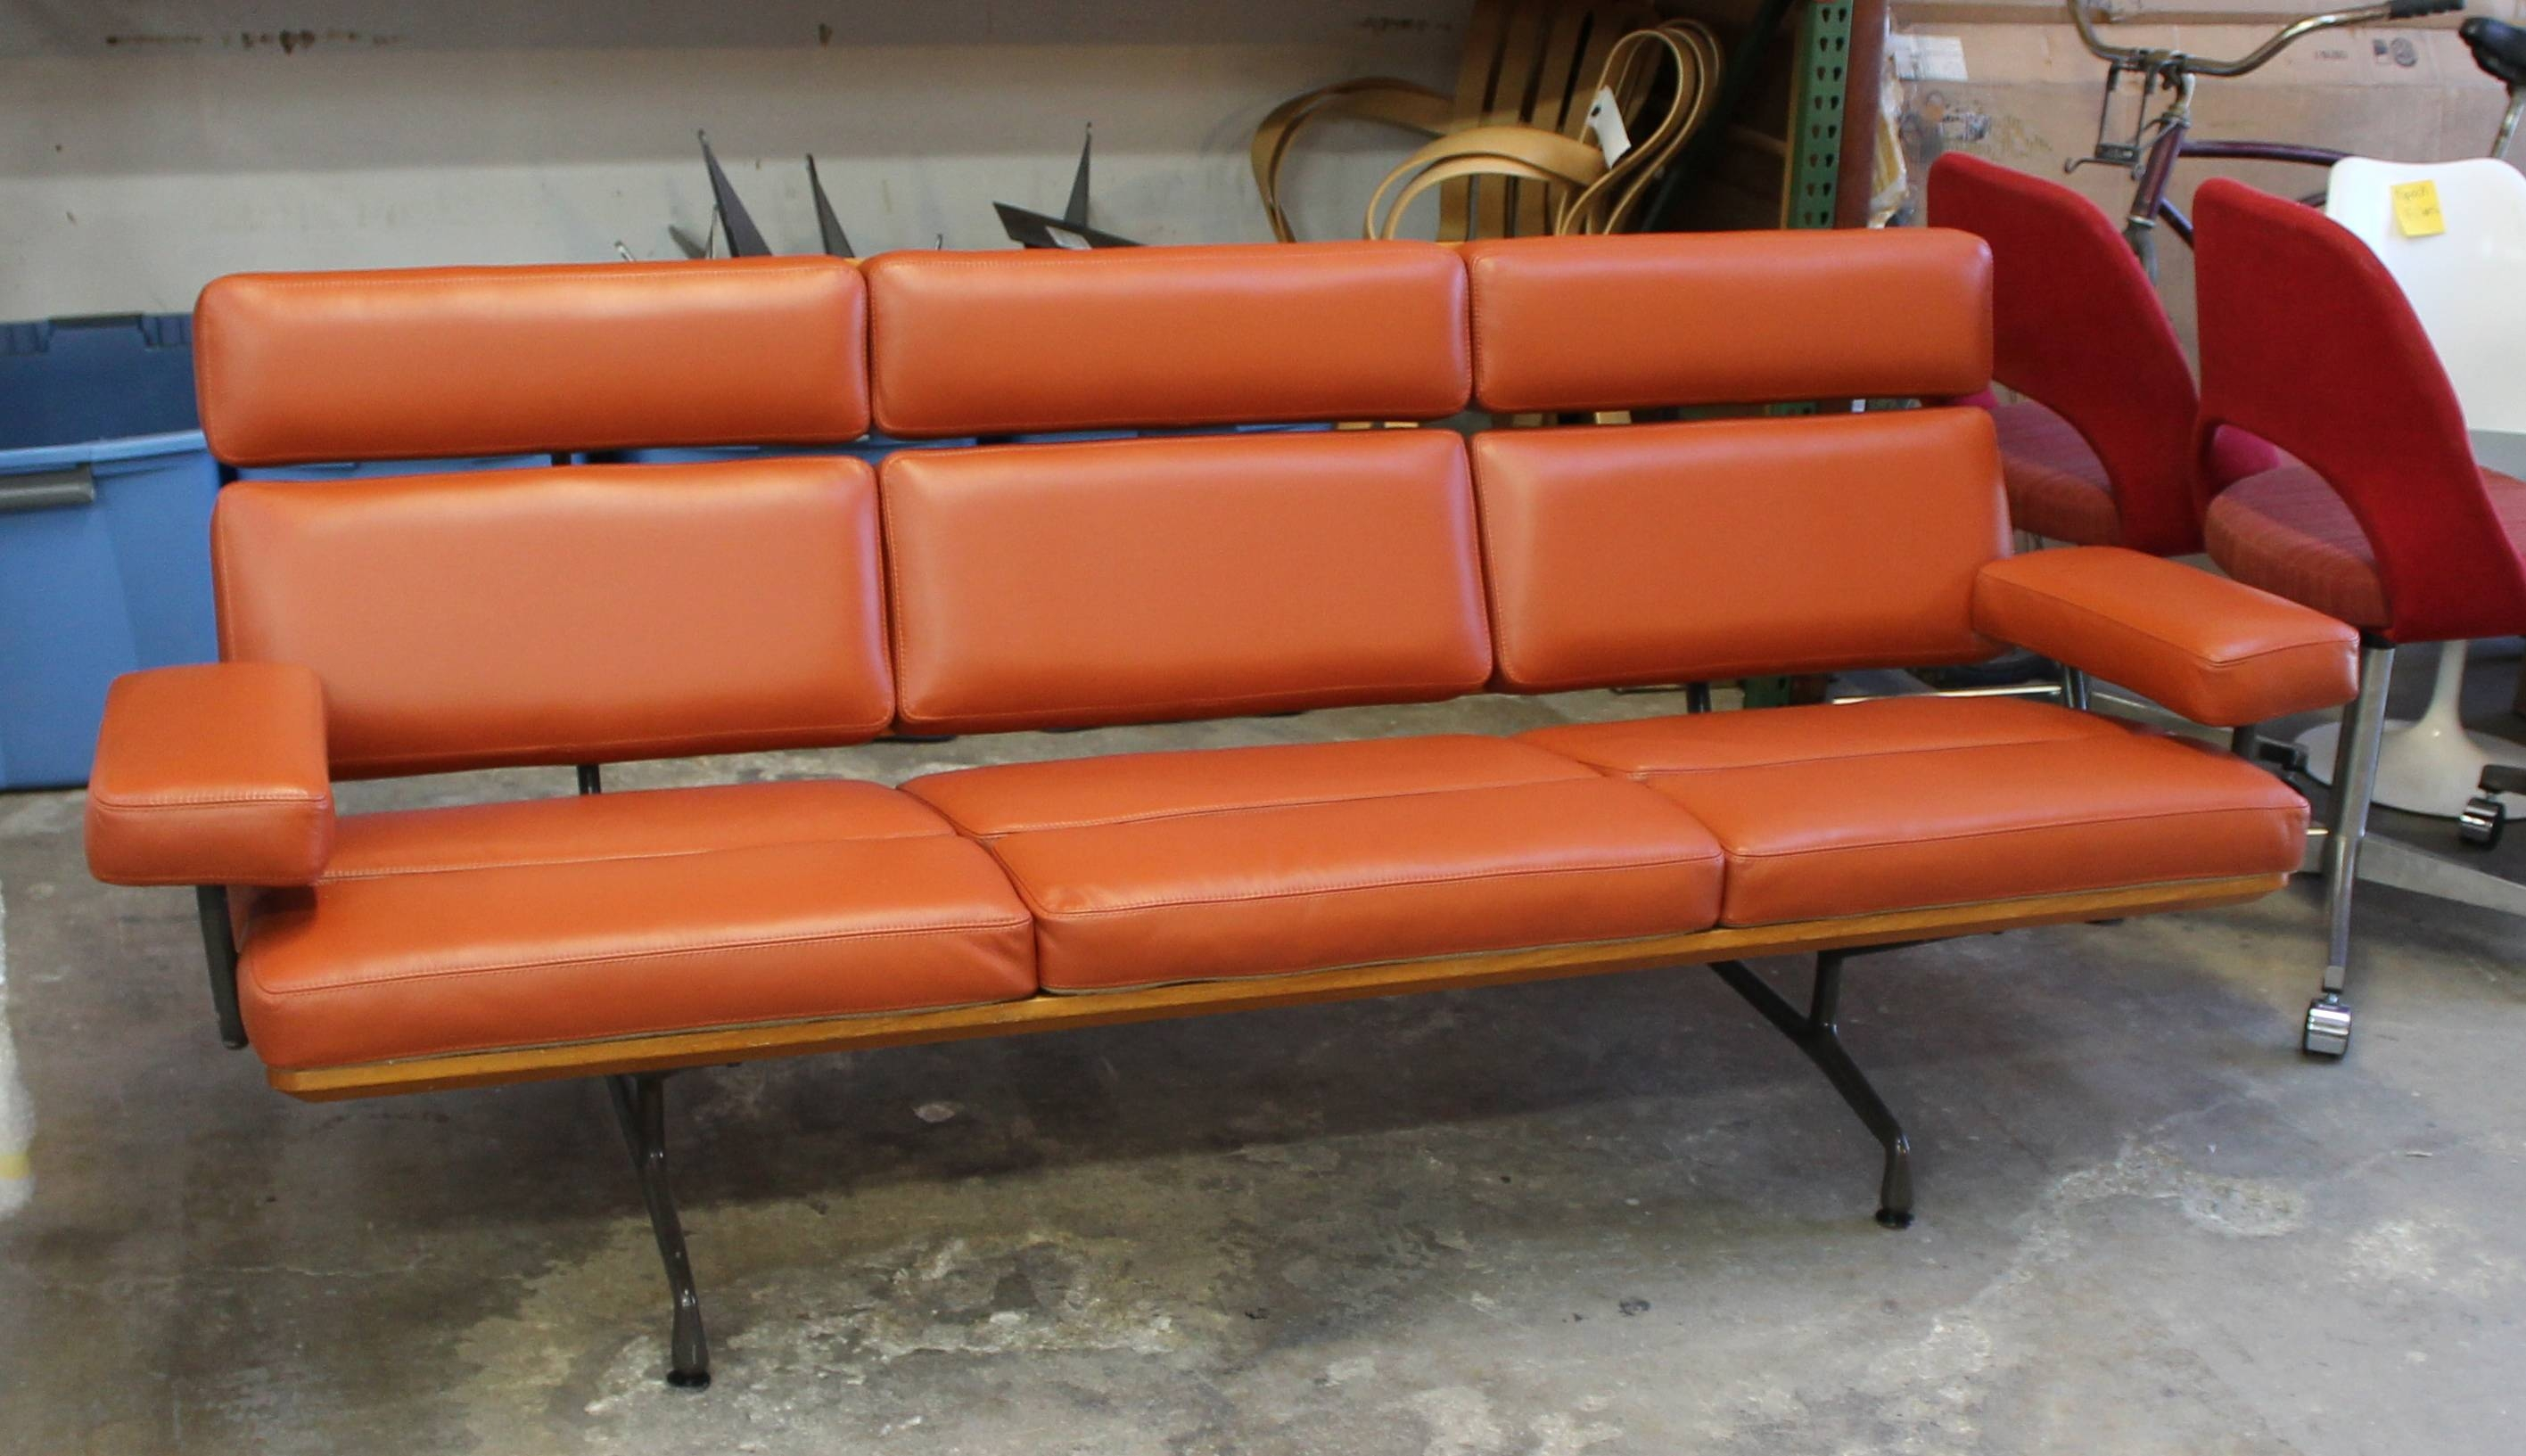 Burnt Orange Leather Sofa - Radiovannes within Burnt Orange Leather Sofas (Image 4 of 15)